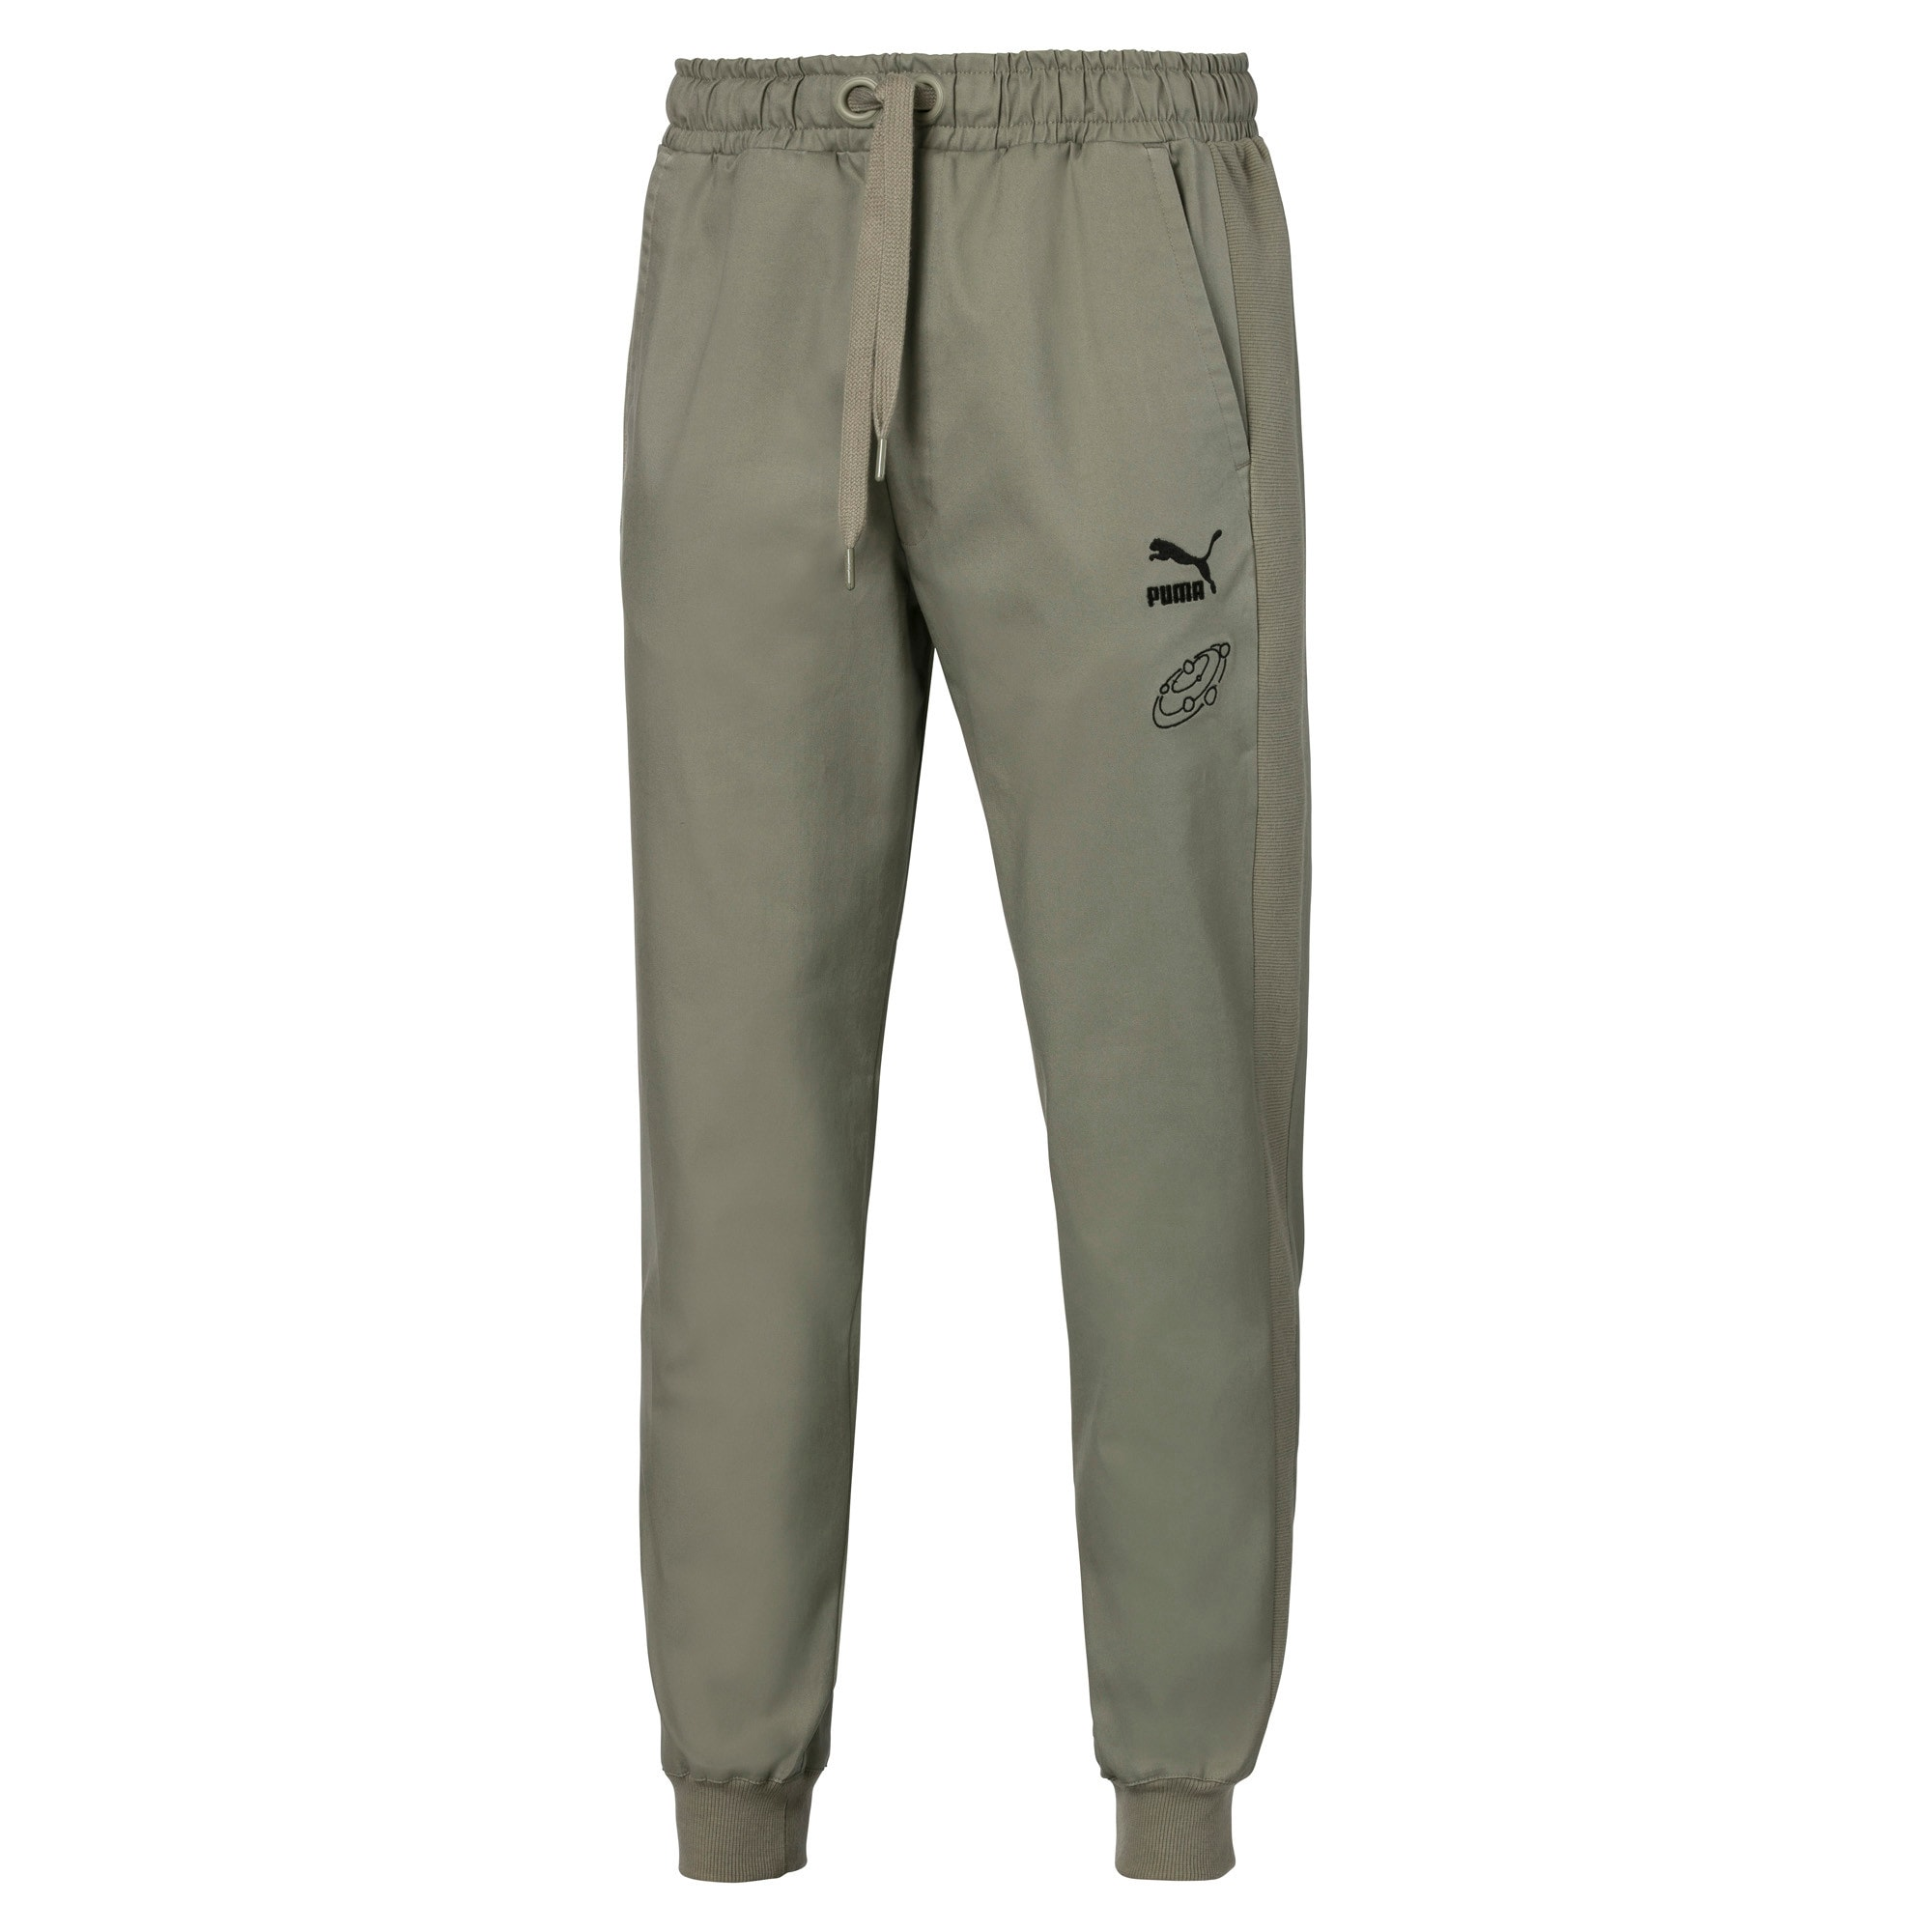 Thumbnail 1 of PUMA x TYAKASHA Men's Track Pants, Vetiver, medium